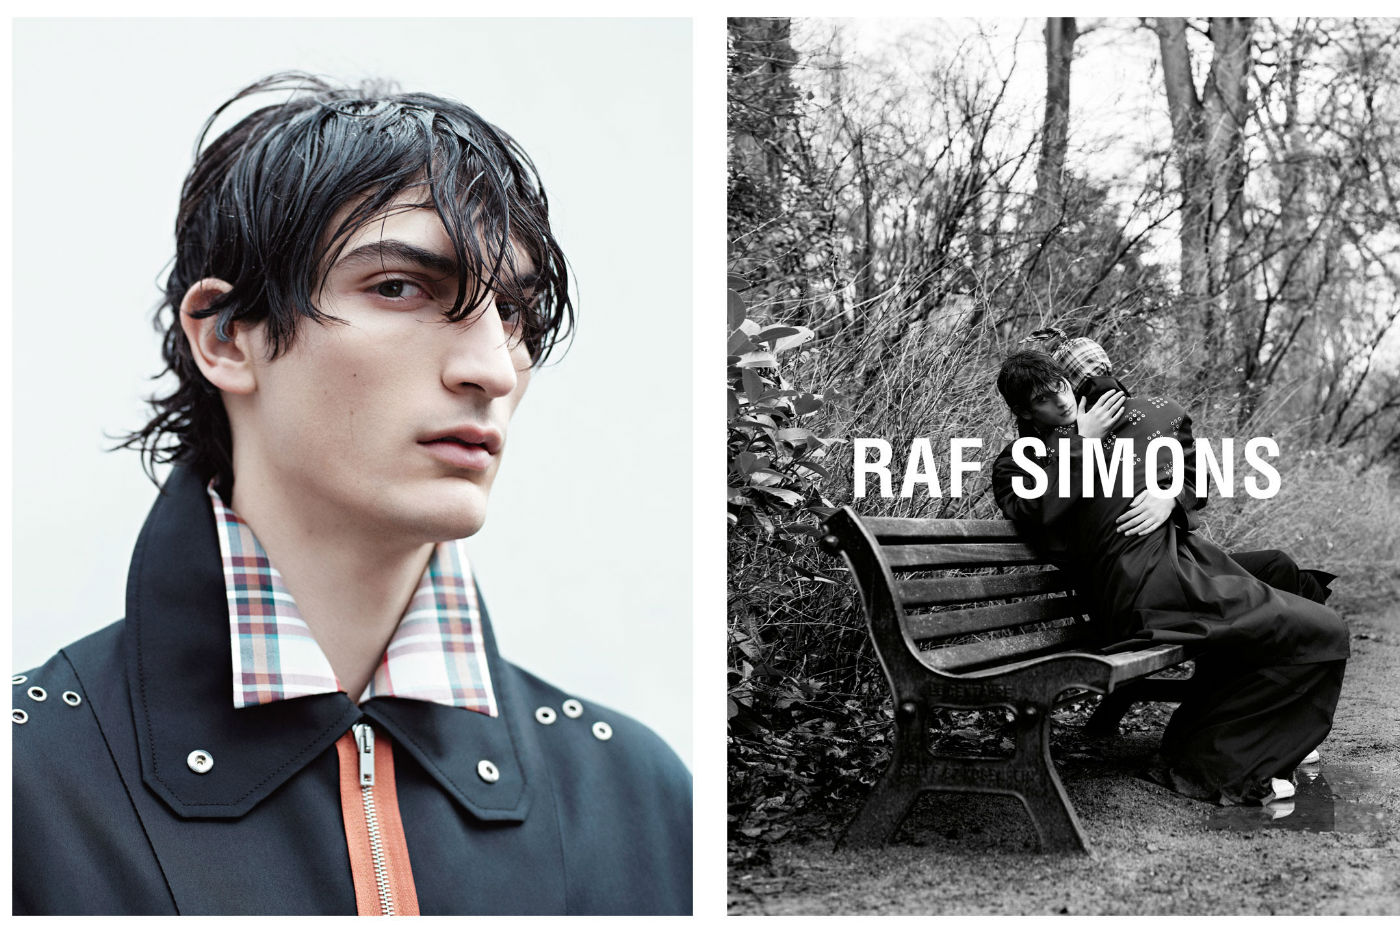 Raf Simons Spring-Summer 2016 Campaign